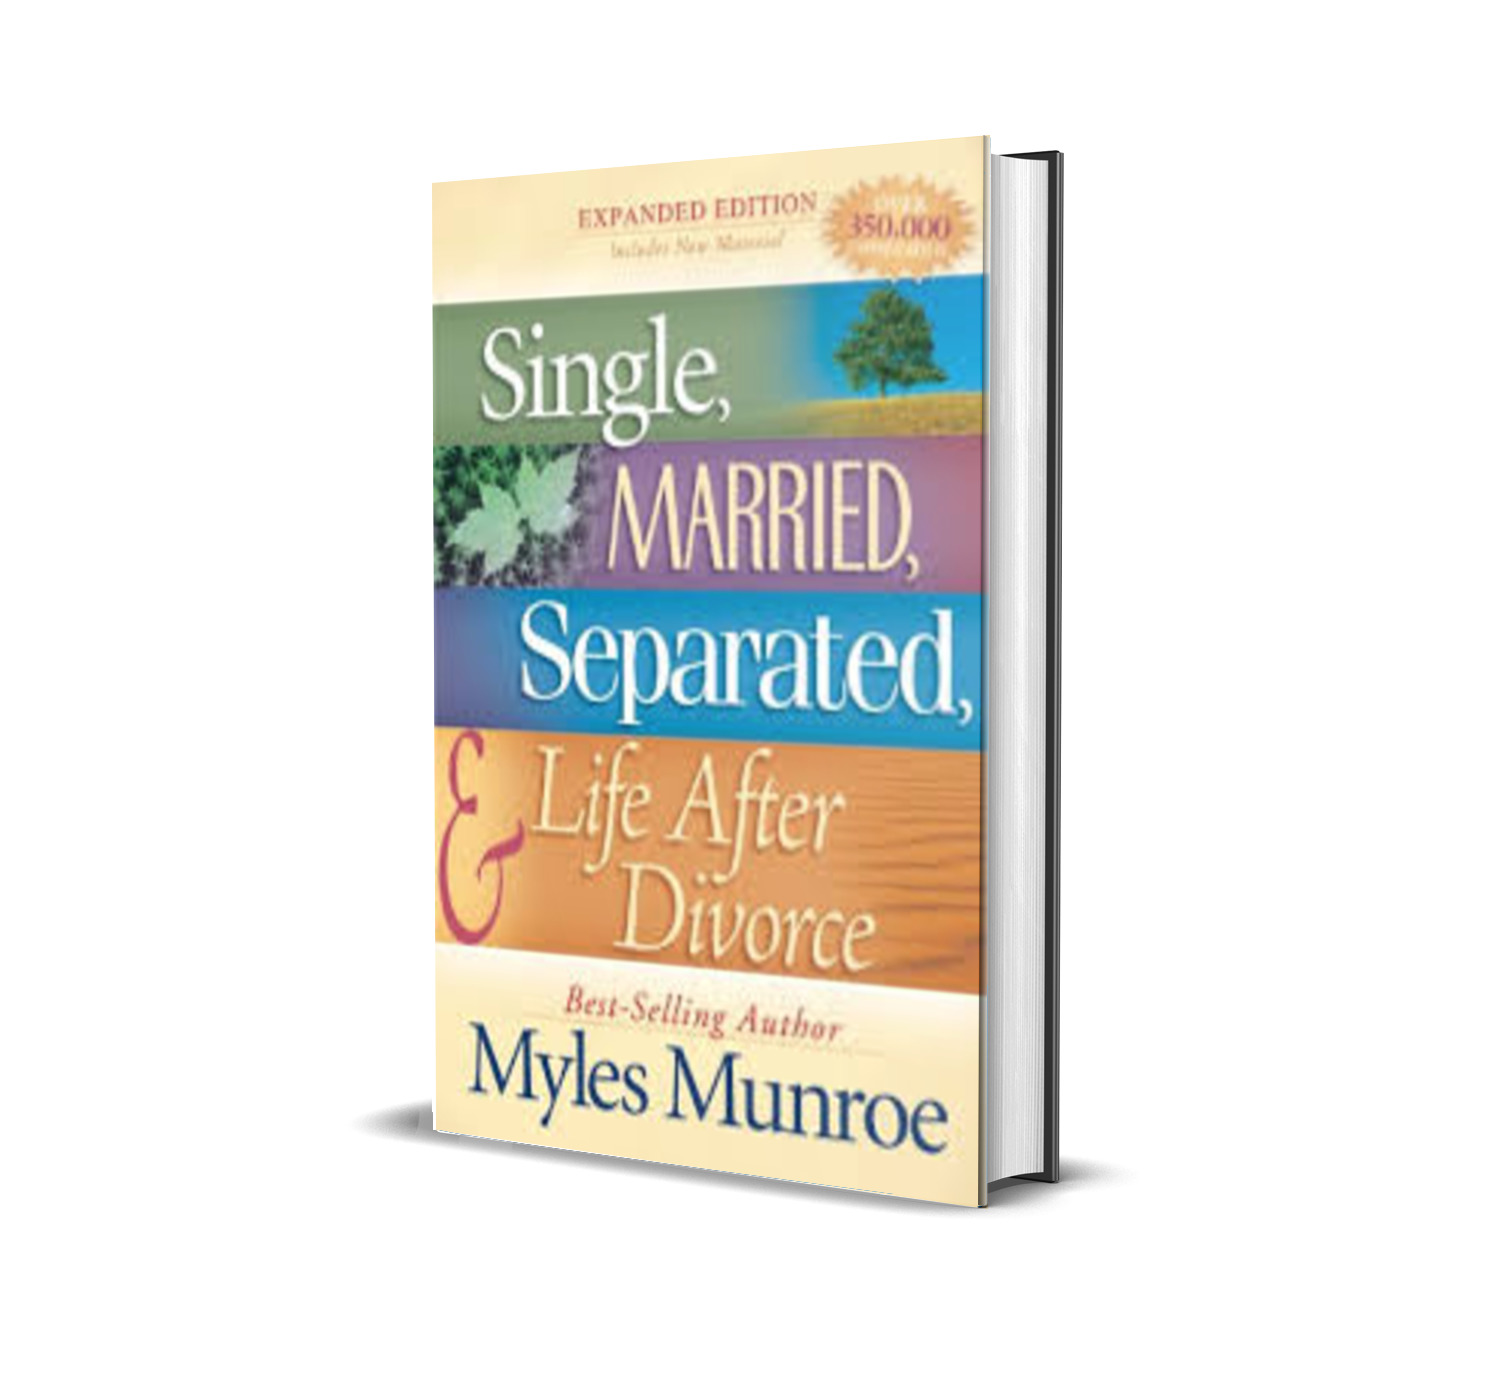 SINGLE, MARRIAGE, SEPARATED AND LIFE AFTER DIVORCE - MYLES MUNROE